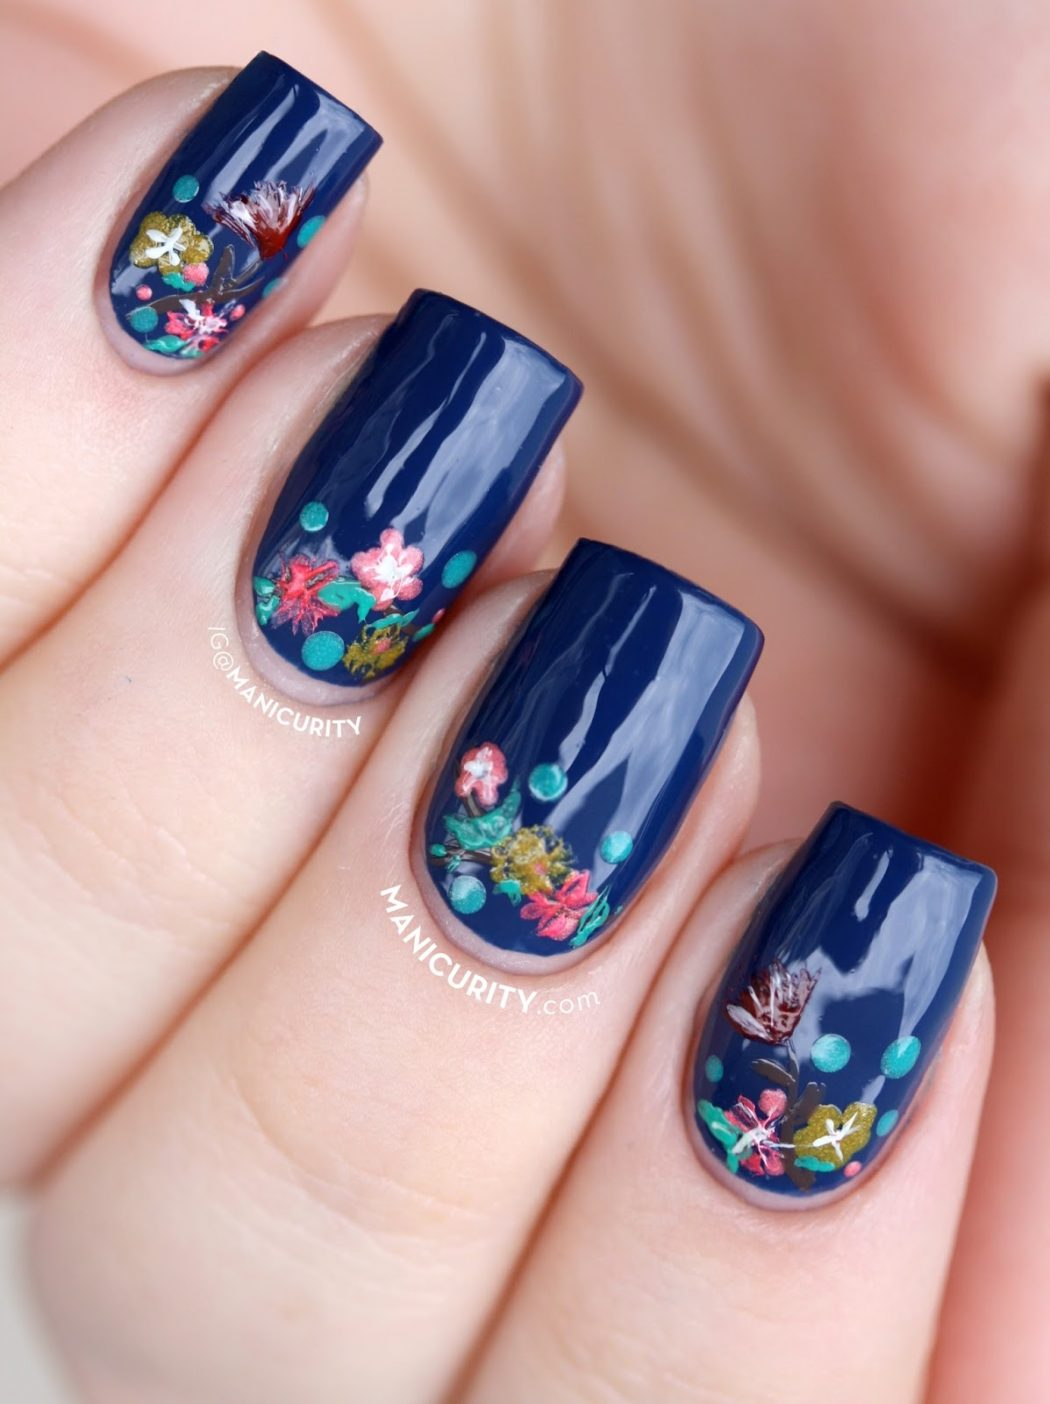 tiny-flower-nails-floral-half-moon-nail-art-china-glaze-5 50+ Coolest Wedding Nail Design Ideas